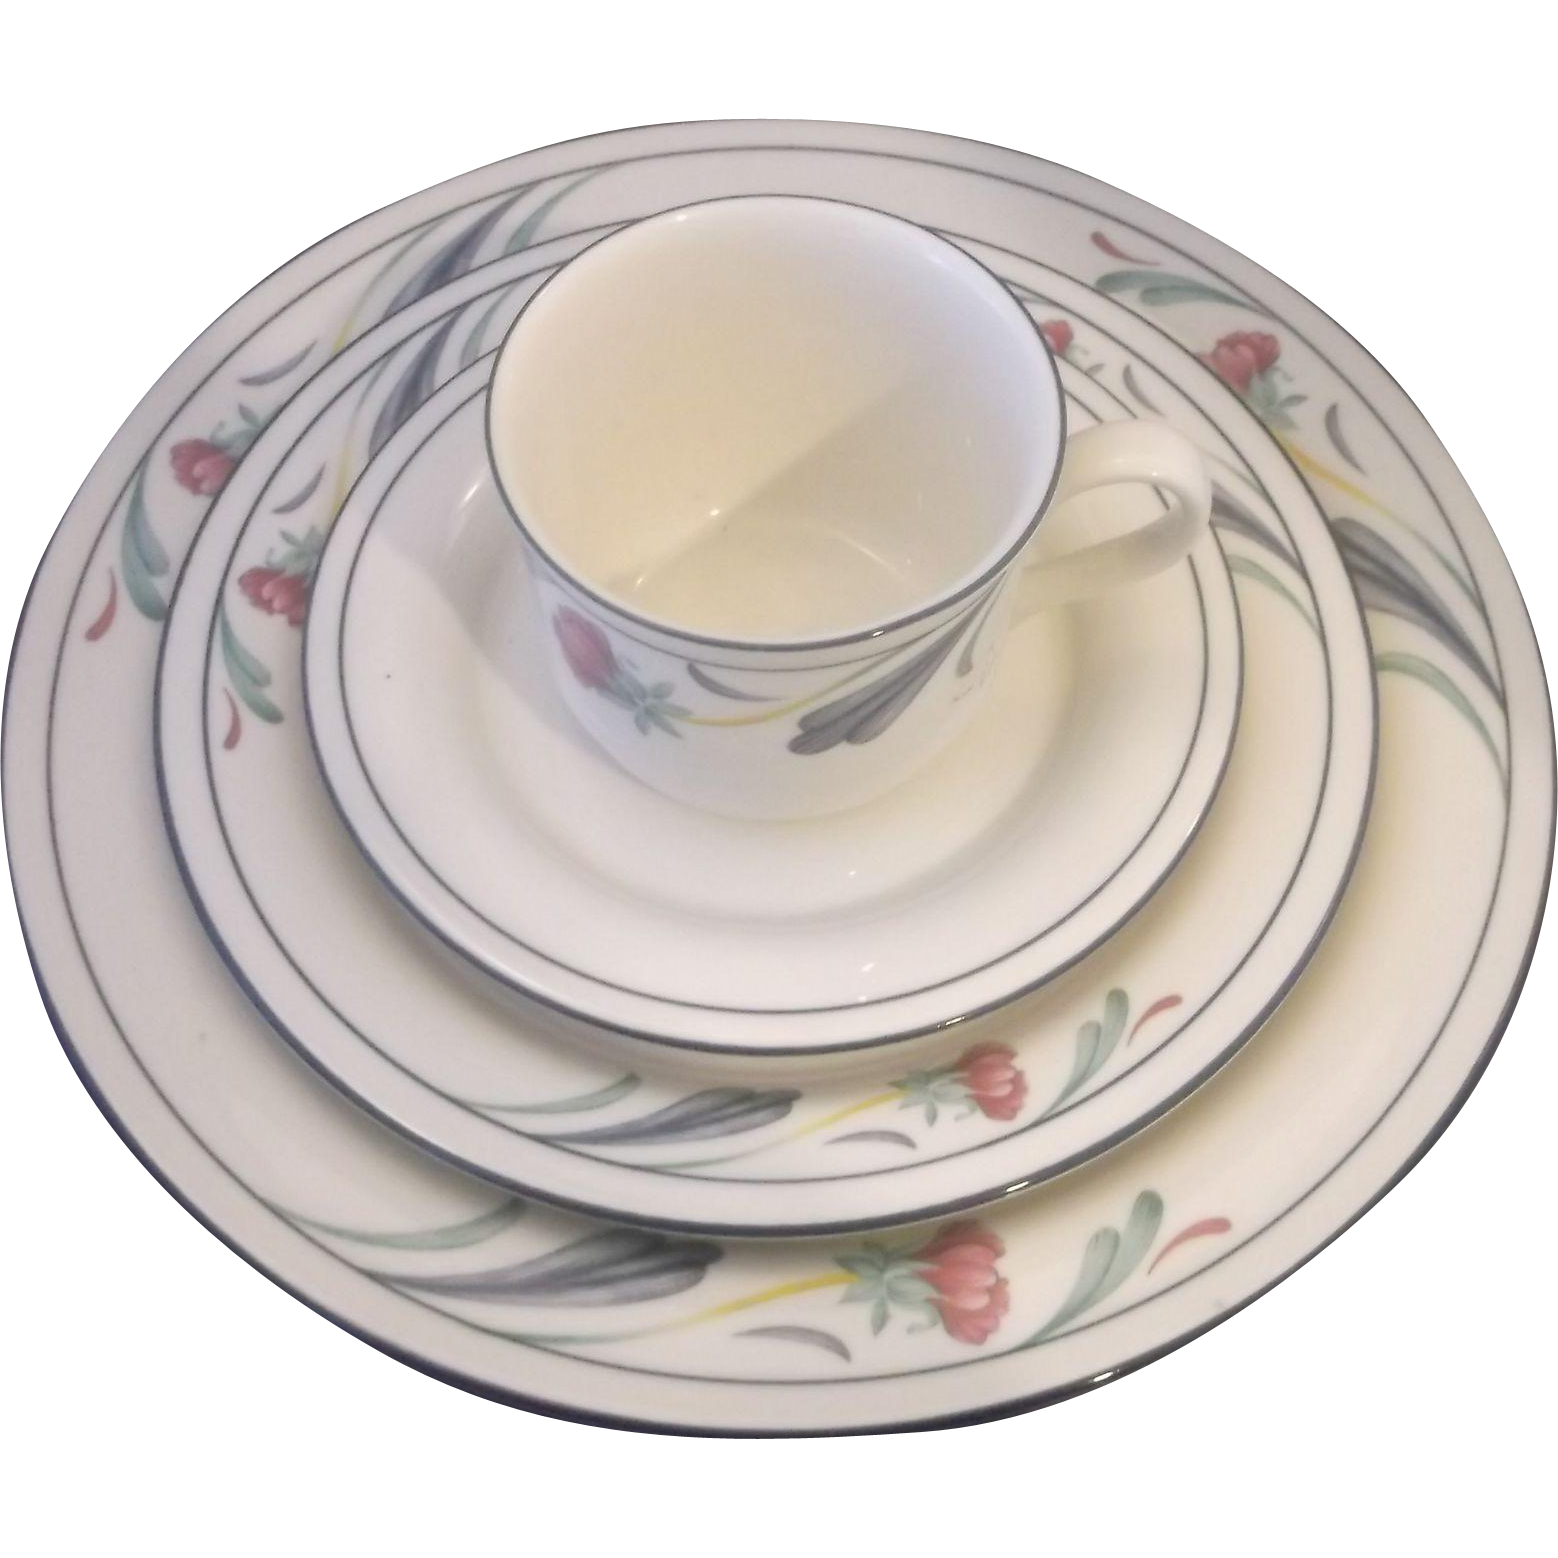 Lenox Poppies on Blue Chinastone Place Setting 4 Piece Dinner Salad Cup Saucer